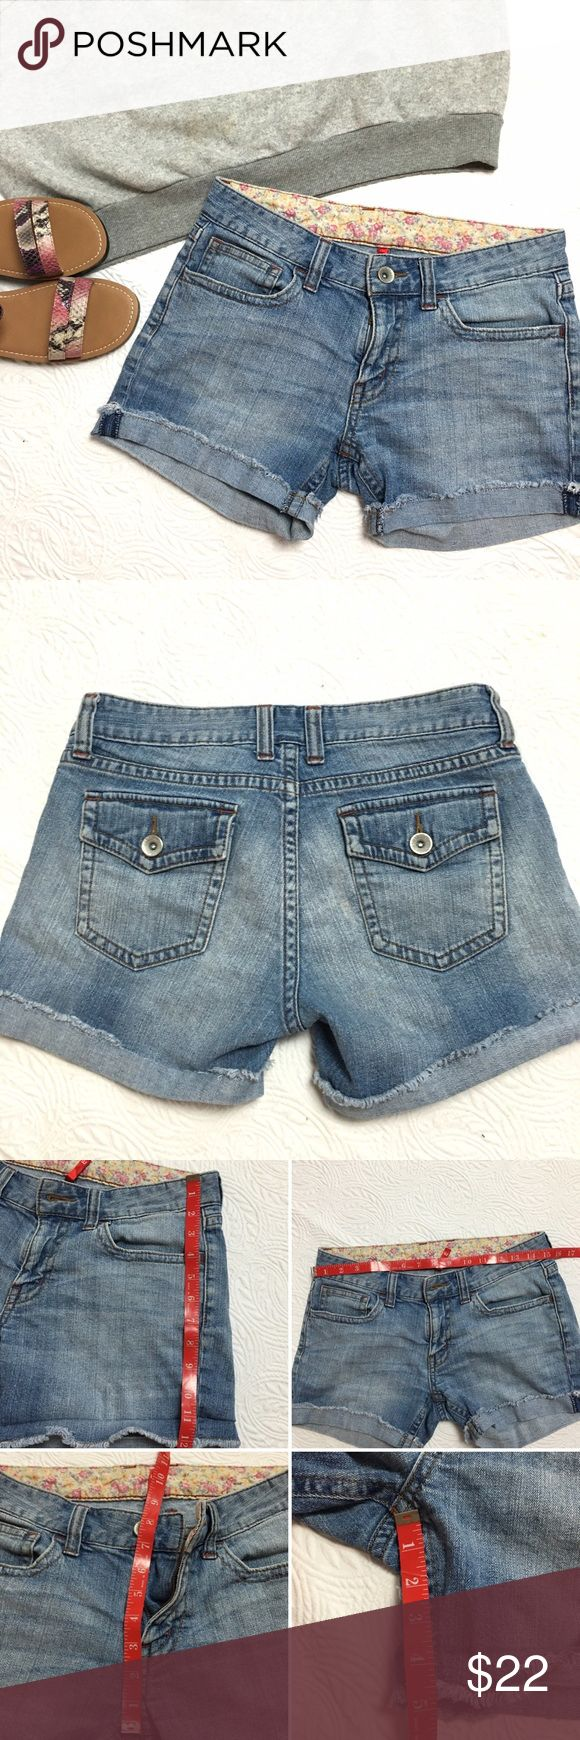 Uniqlo Distressed Denim Shorts sz 28 Uniqlo Distressed Denim Cuffed Shorts with Floral Waist Band and a touch of stretch.  There is a few  faint yellow stains on back (shown) not very noticeable otherwise nice clean condition. 👍OFFERS welcome. 🚫no trades pls Uniqlo Shorts Jean Shorts